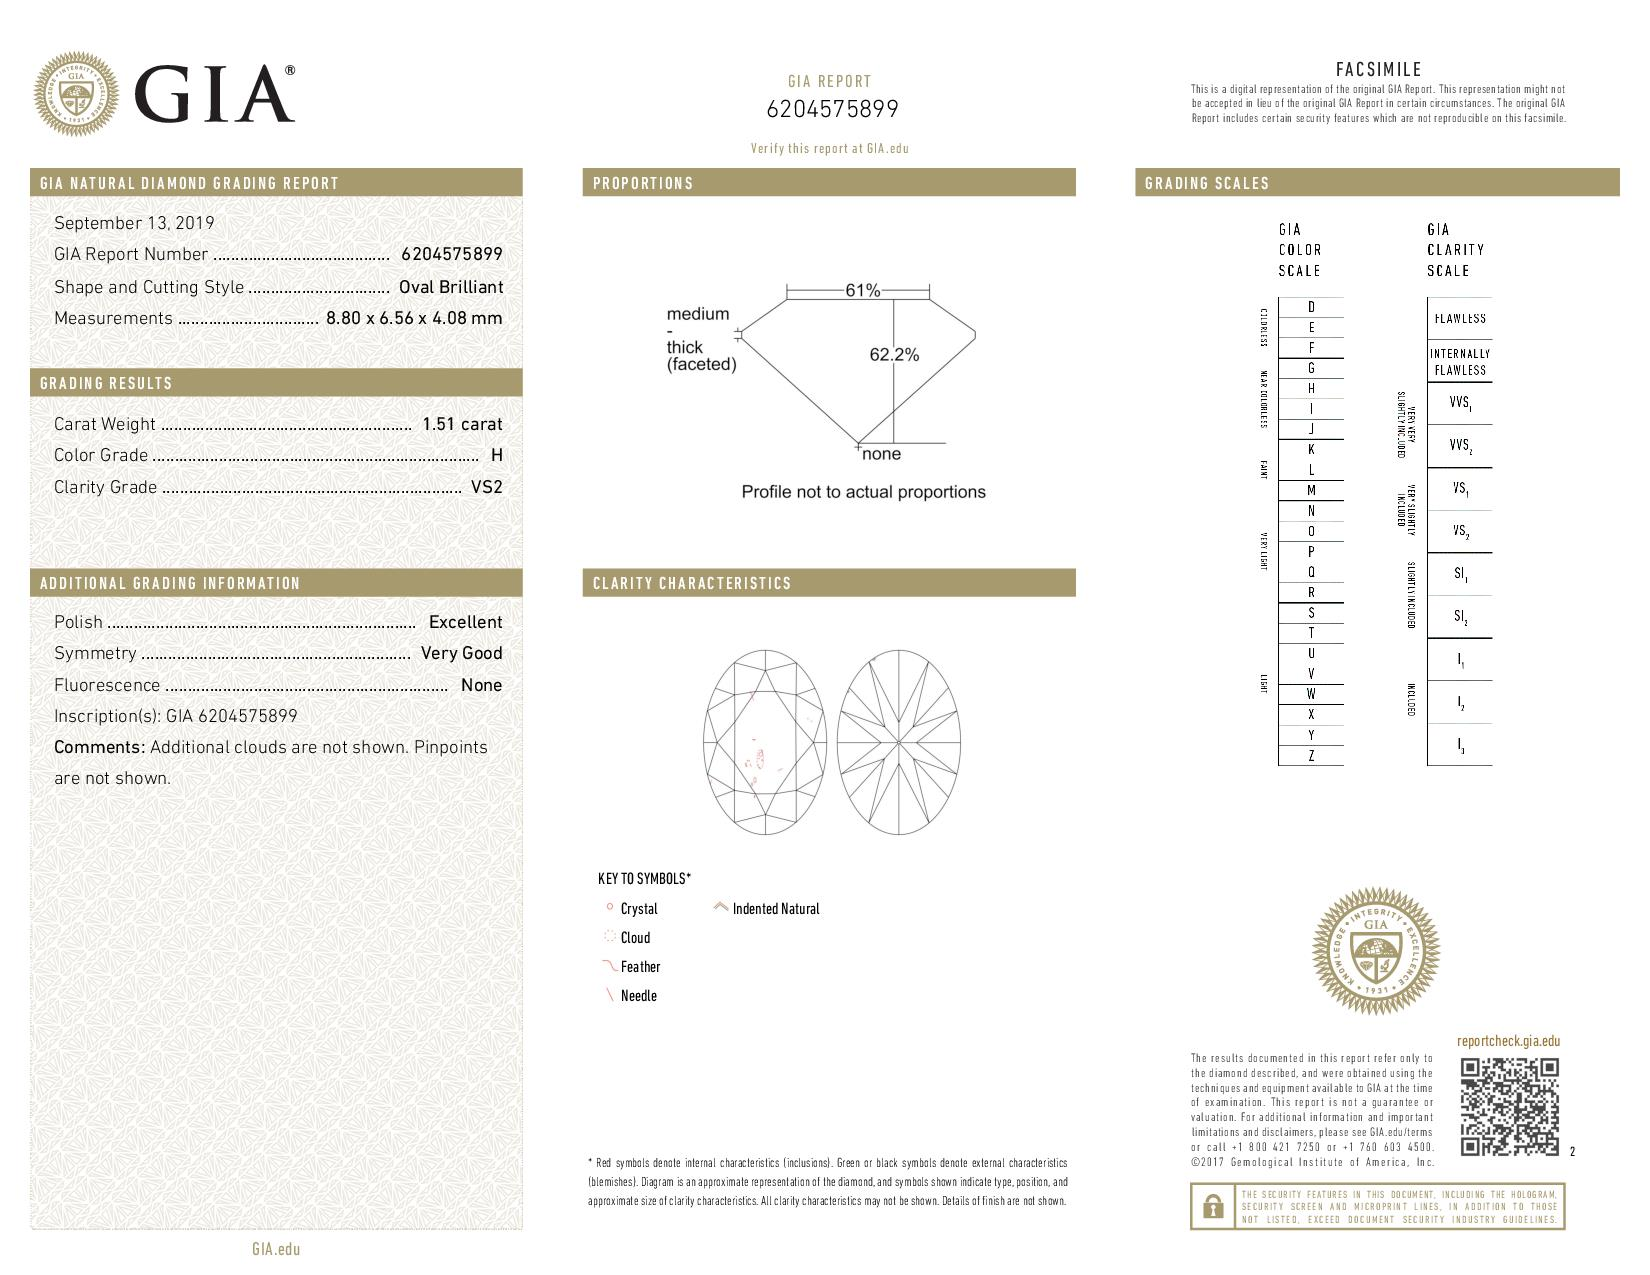 This is a 1.51 carat oval shape, H color, VS2 clarity natural diamond accompanied by a GIA grading report.